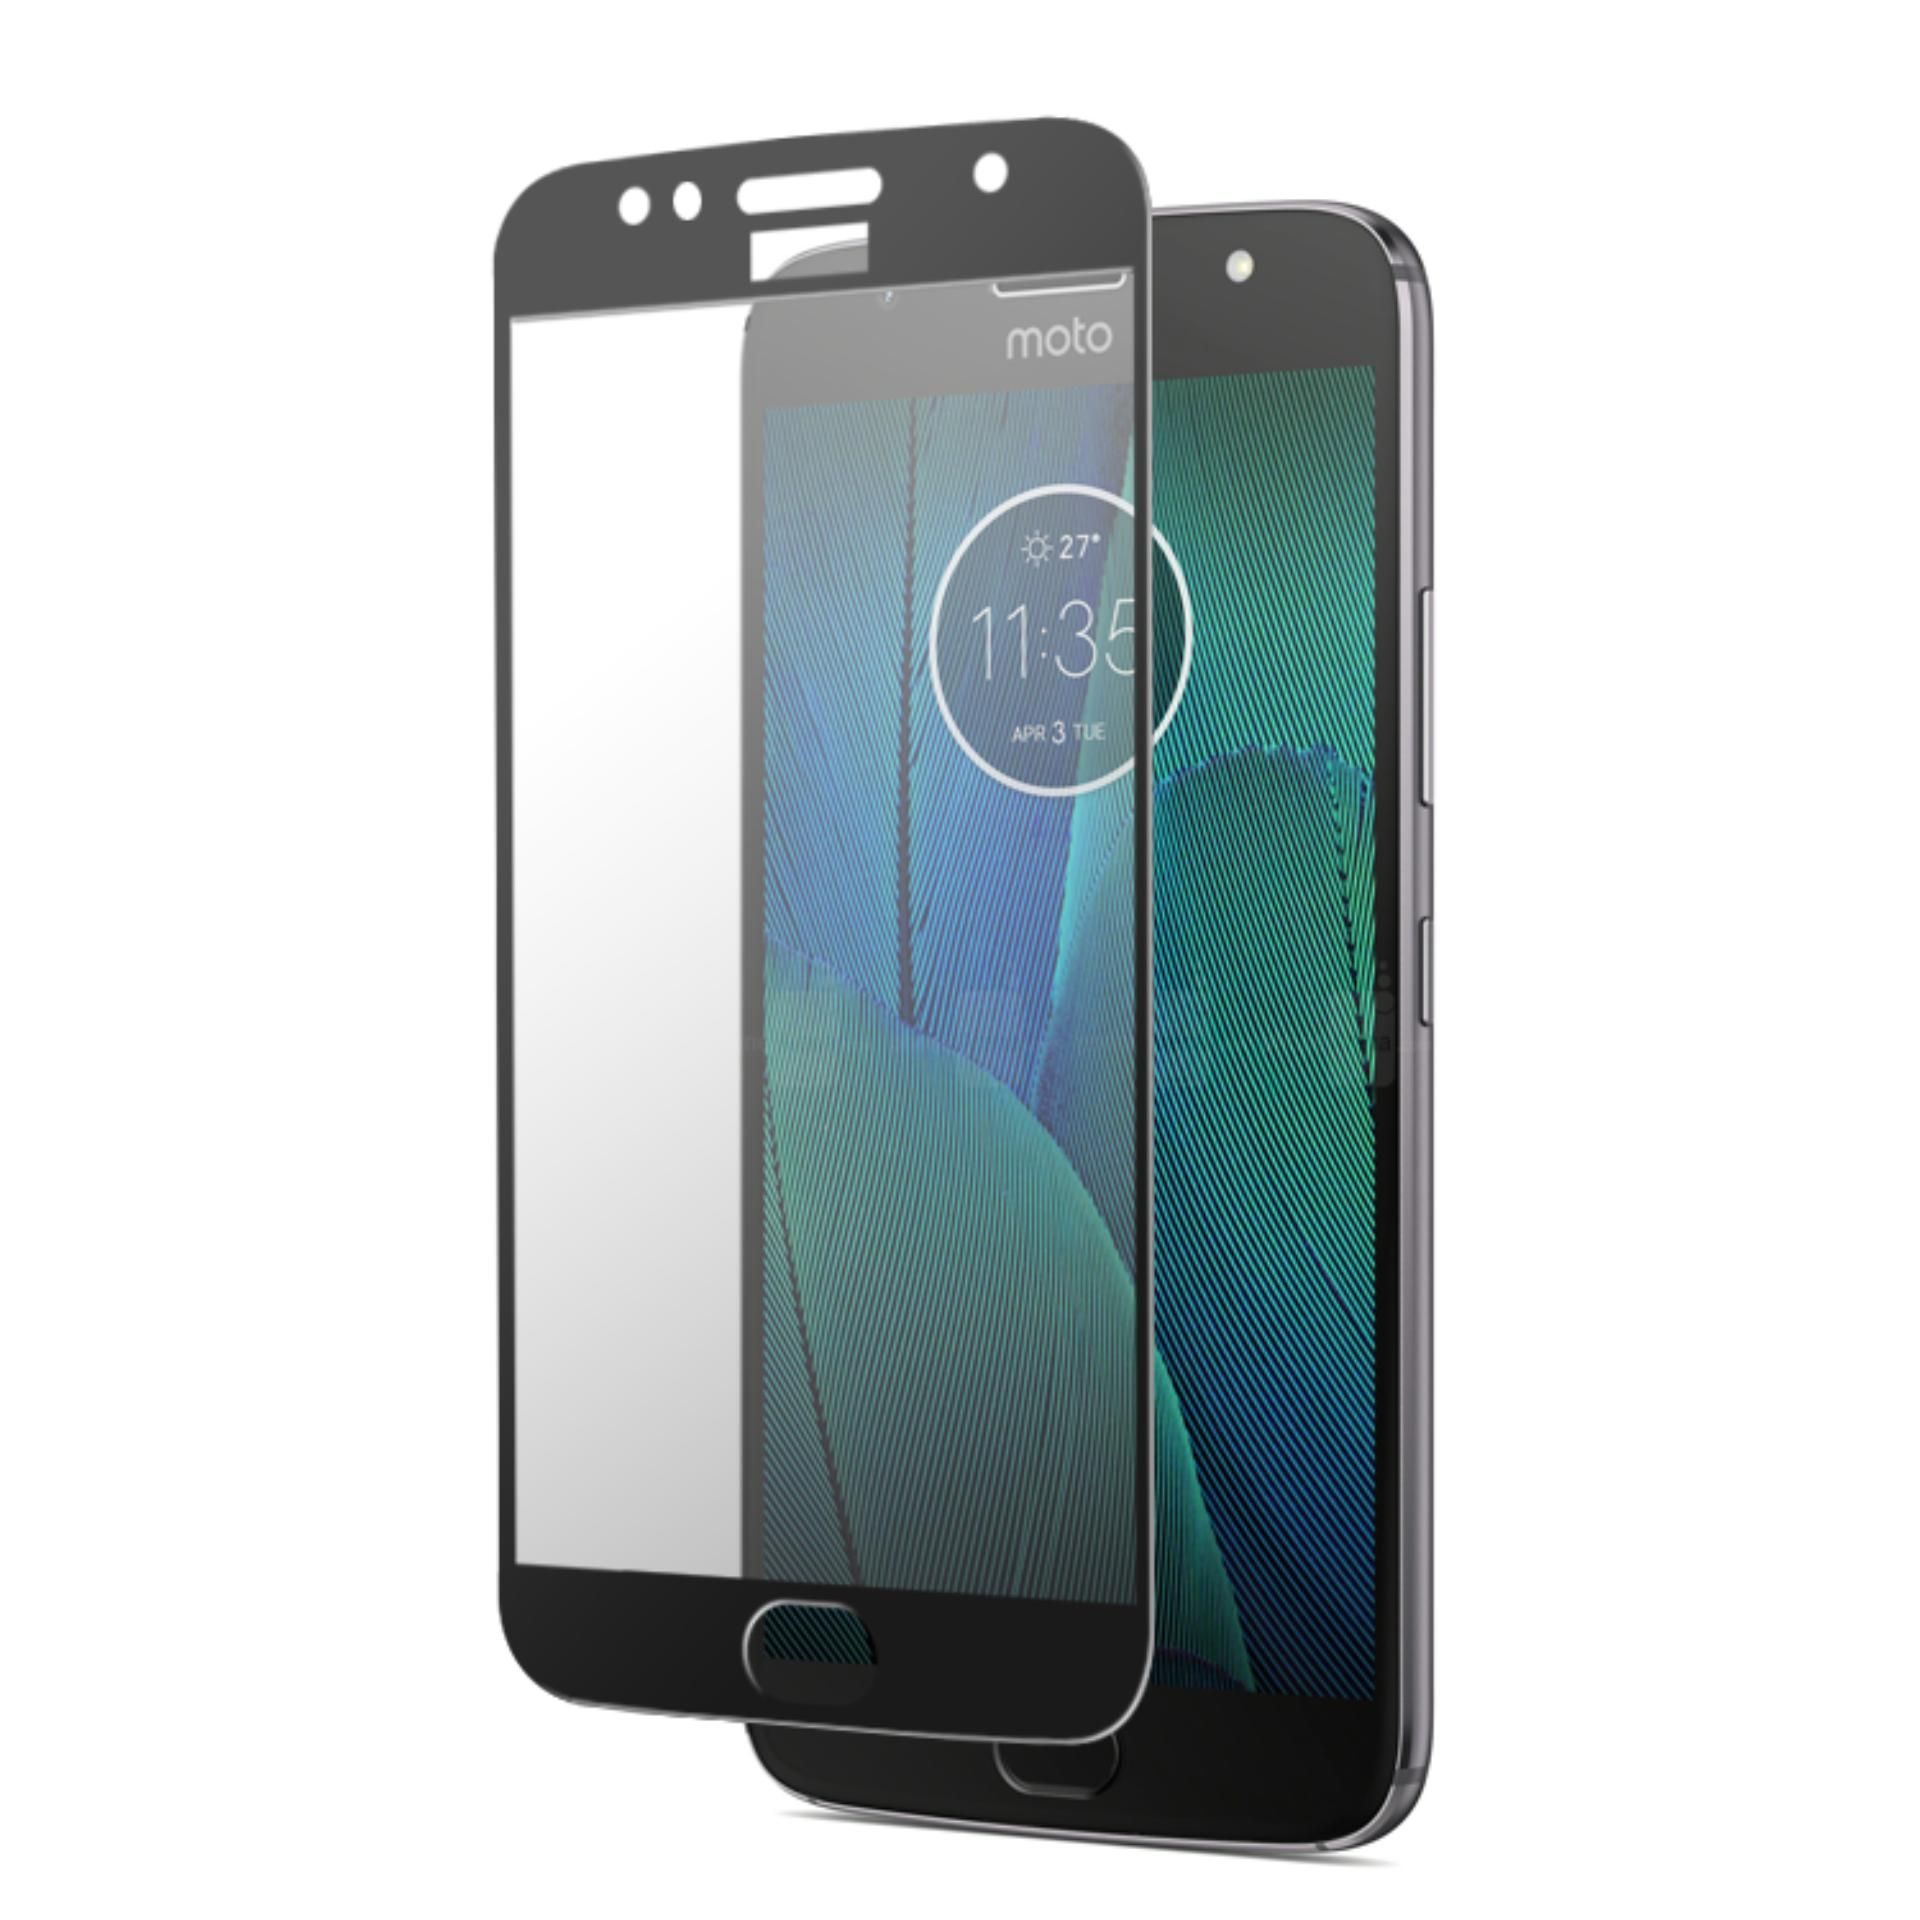 Miliki Segera Hmc Motorola Moto G5S Plus 2017 Xt1805 Tempered Glass 2 5D Full Screen Lis Hitam